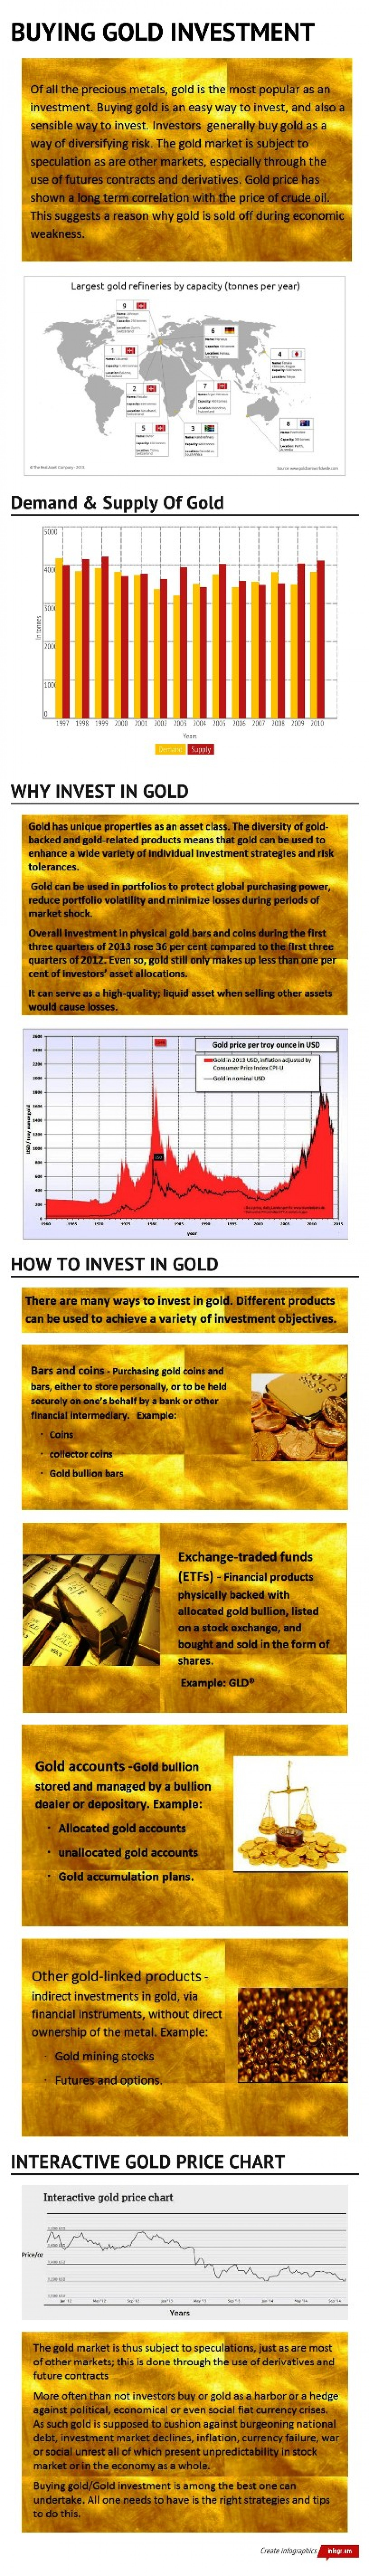 Buying gold investment Infographic